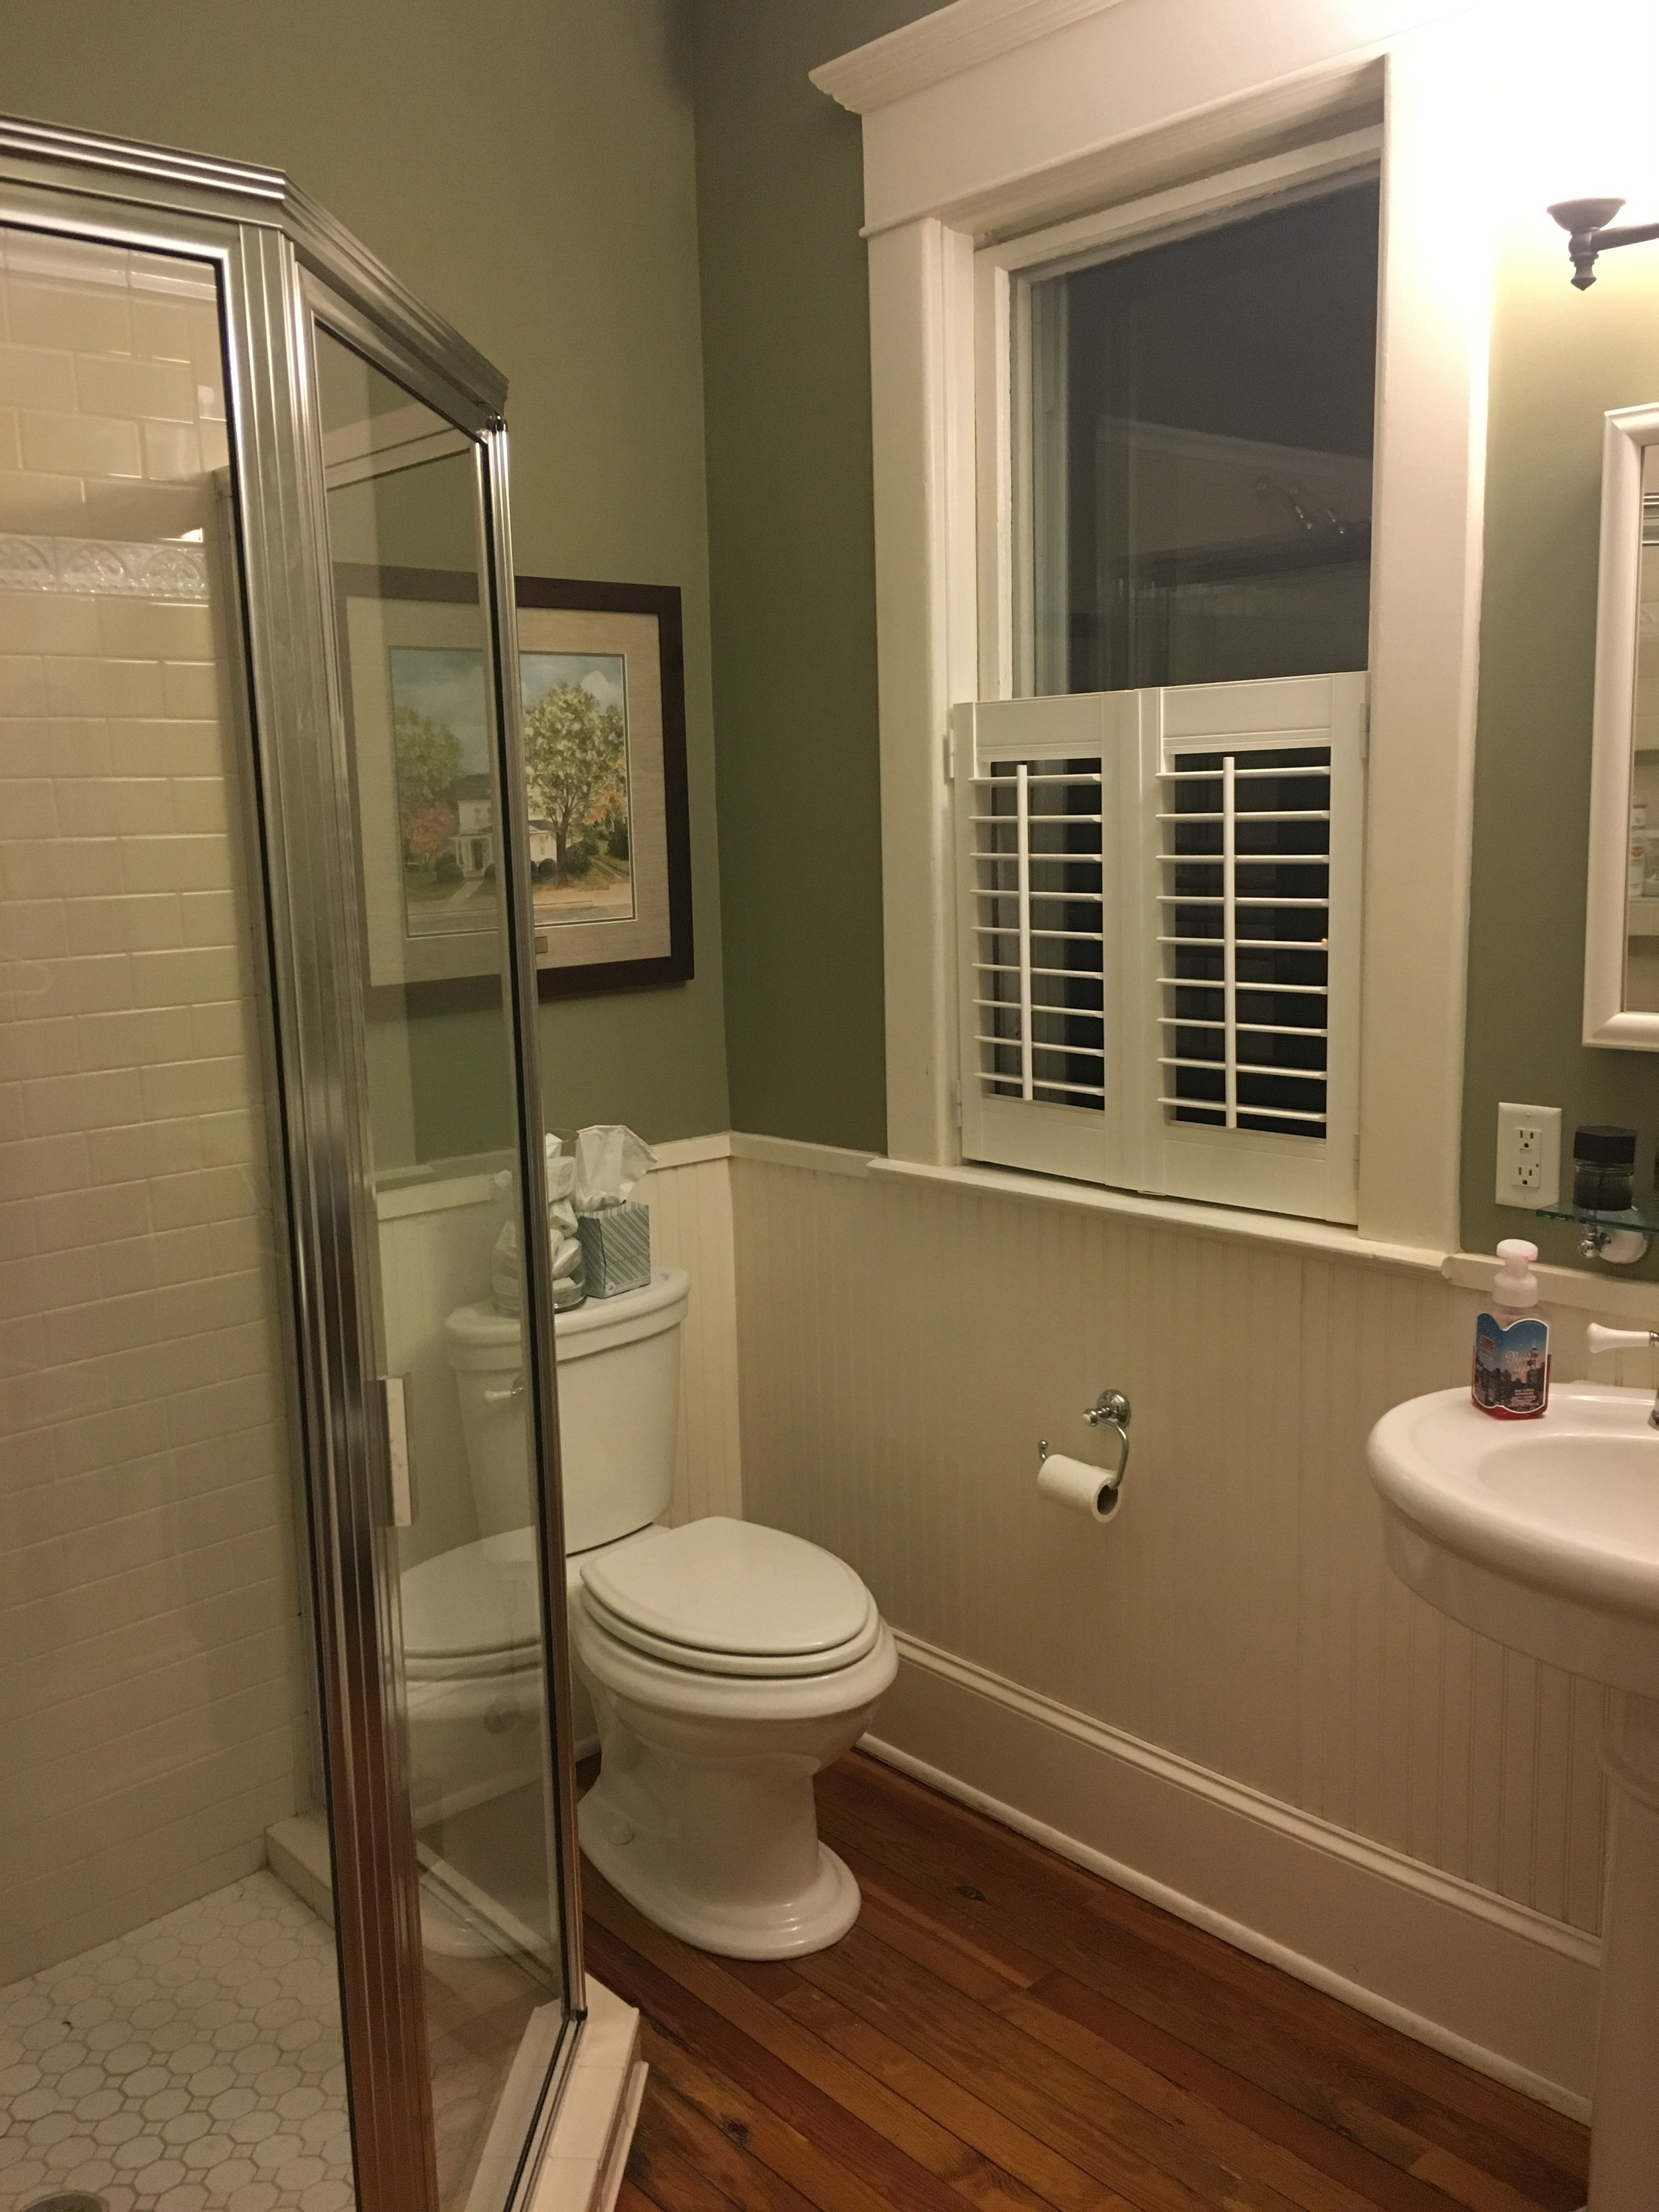 The bathroom before was attractive, but the wood floor wasn't practical and the shower leaked.